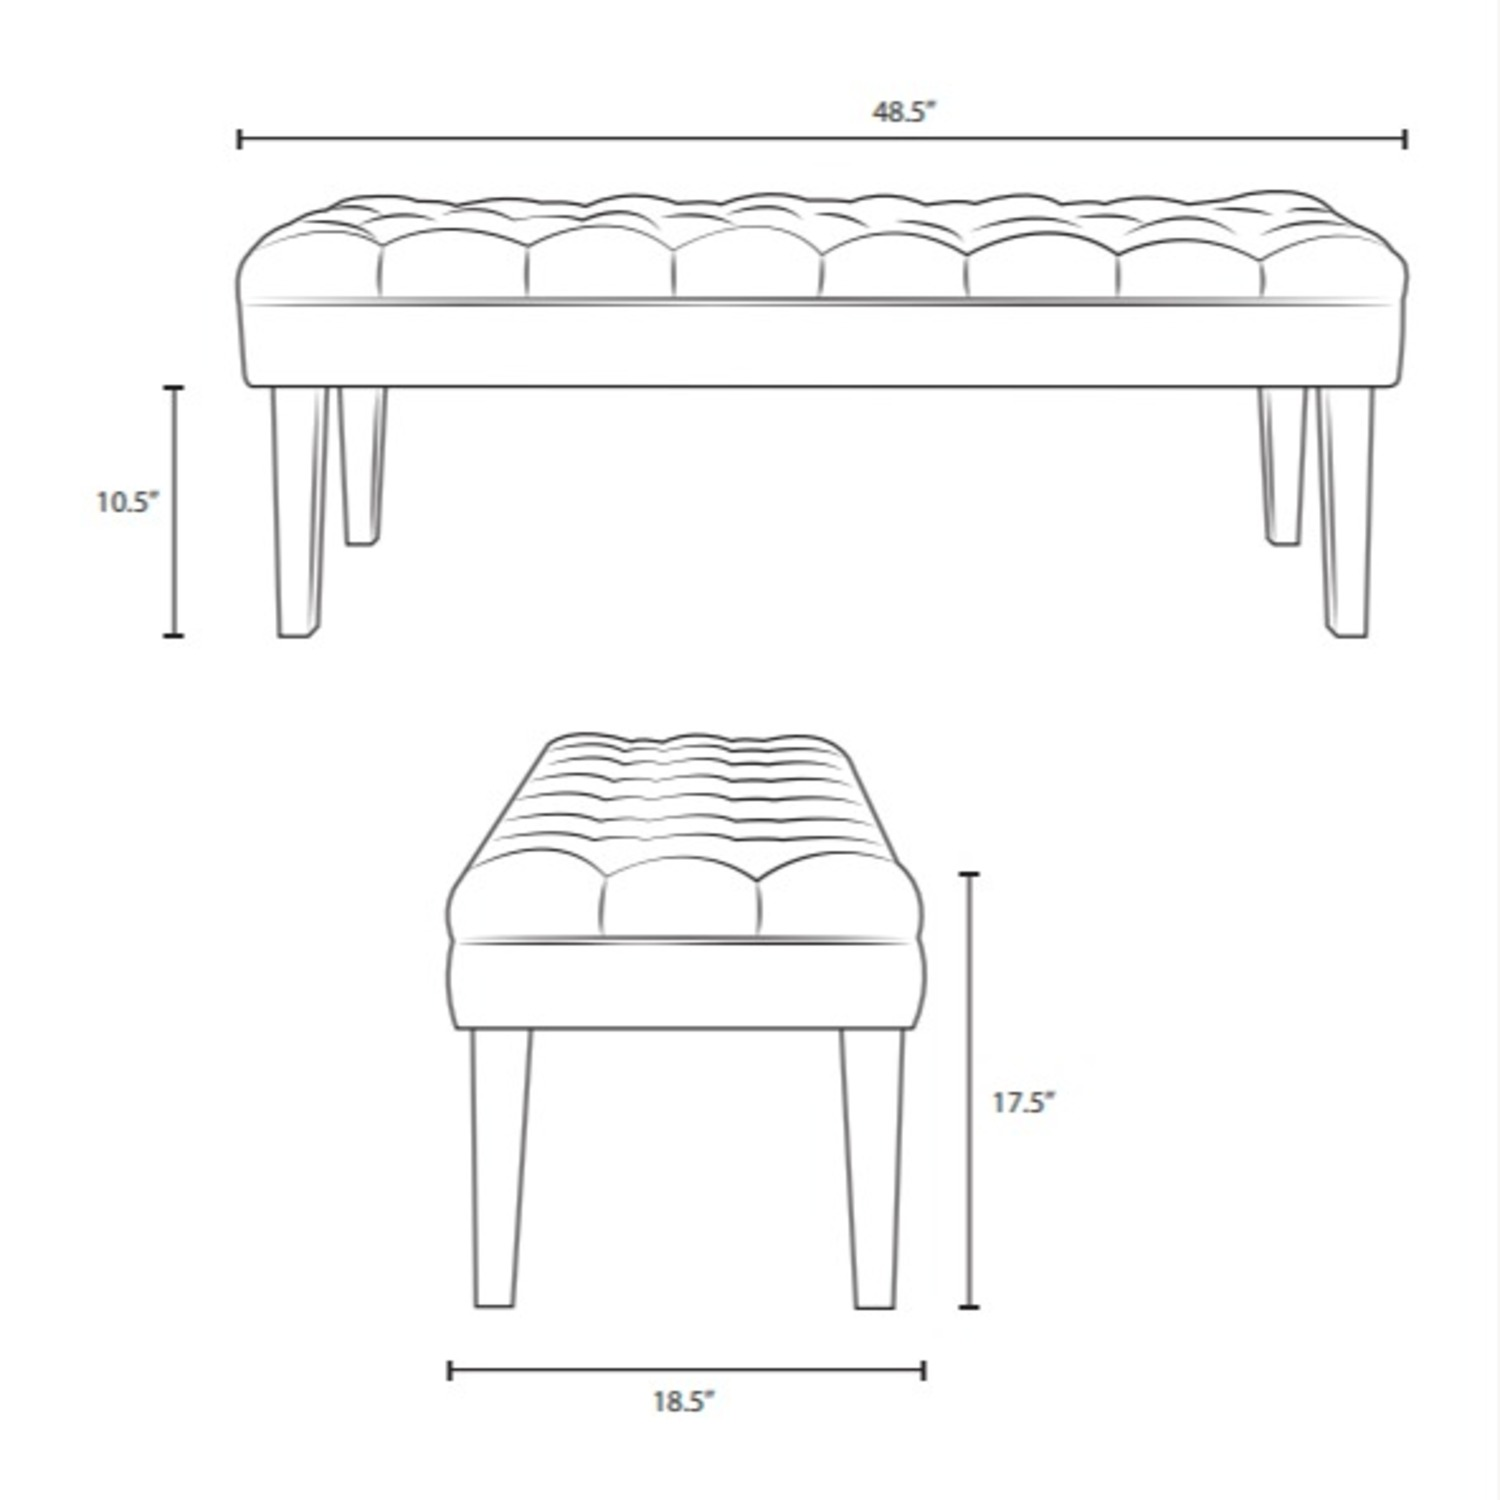 Bench In Ivory Velvet Fabric W/ Clear Acrylic Legs - image-4